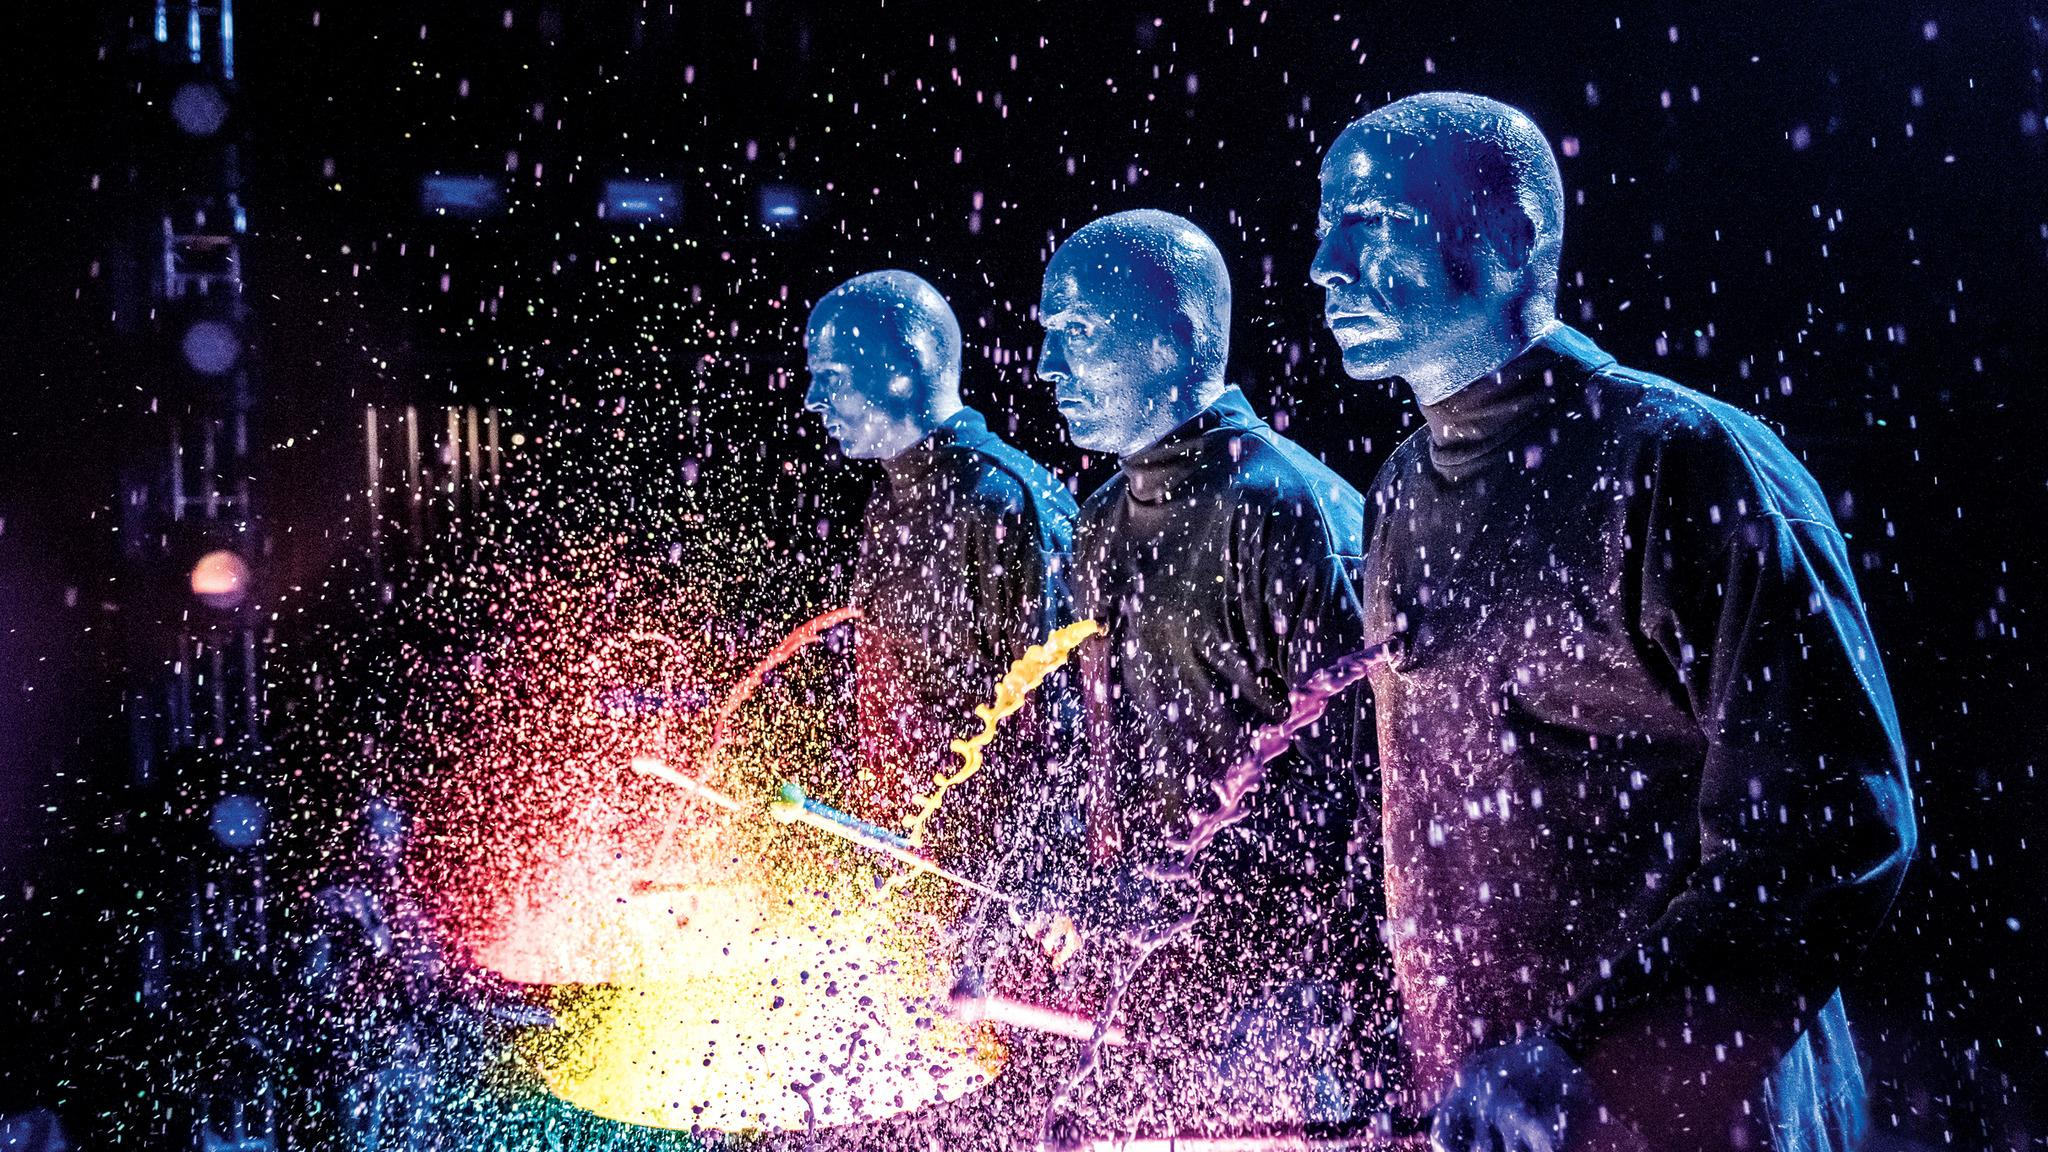 Blue Man Group Las Vegas at Xfinity Center